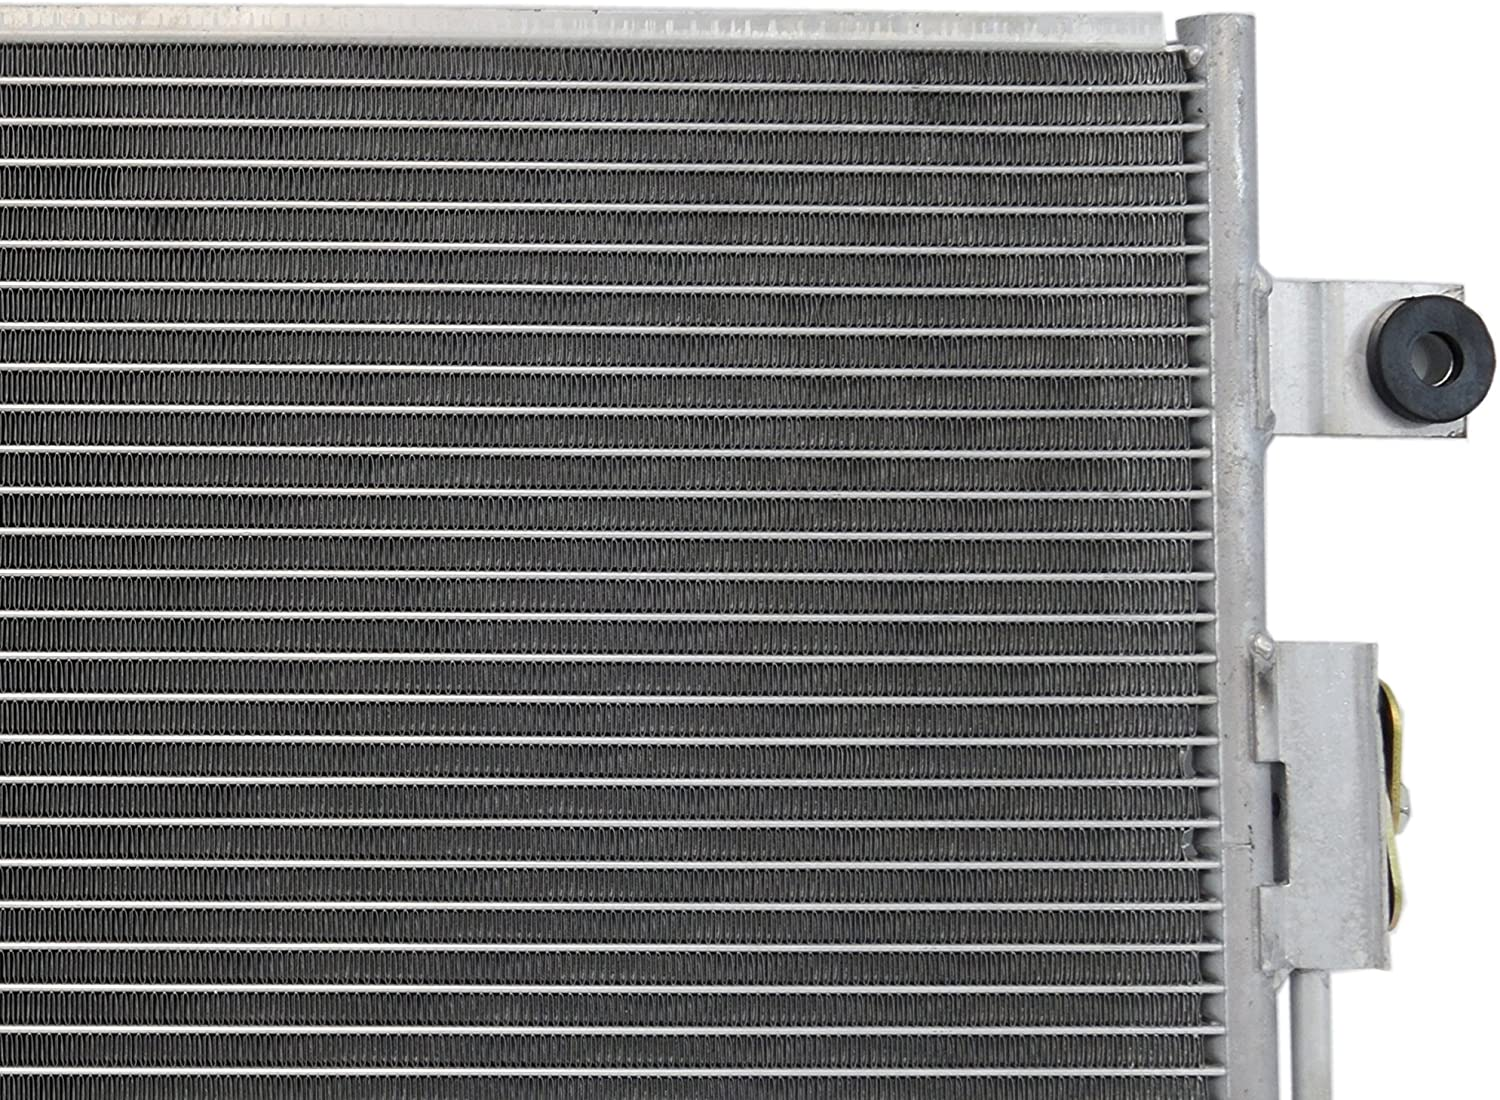 Sunbelt A//C AC Condenser For Freightliner M2 106 Sterling Truck Acterra 40986 Drop in Fitment